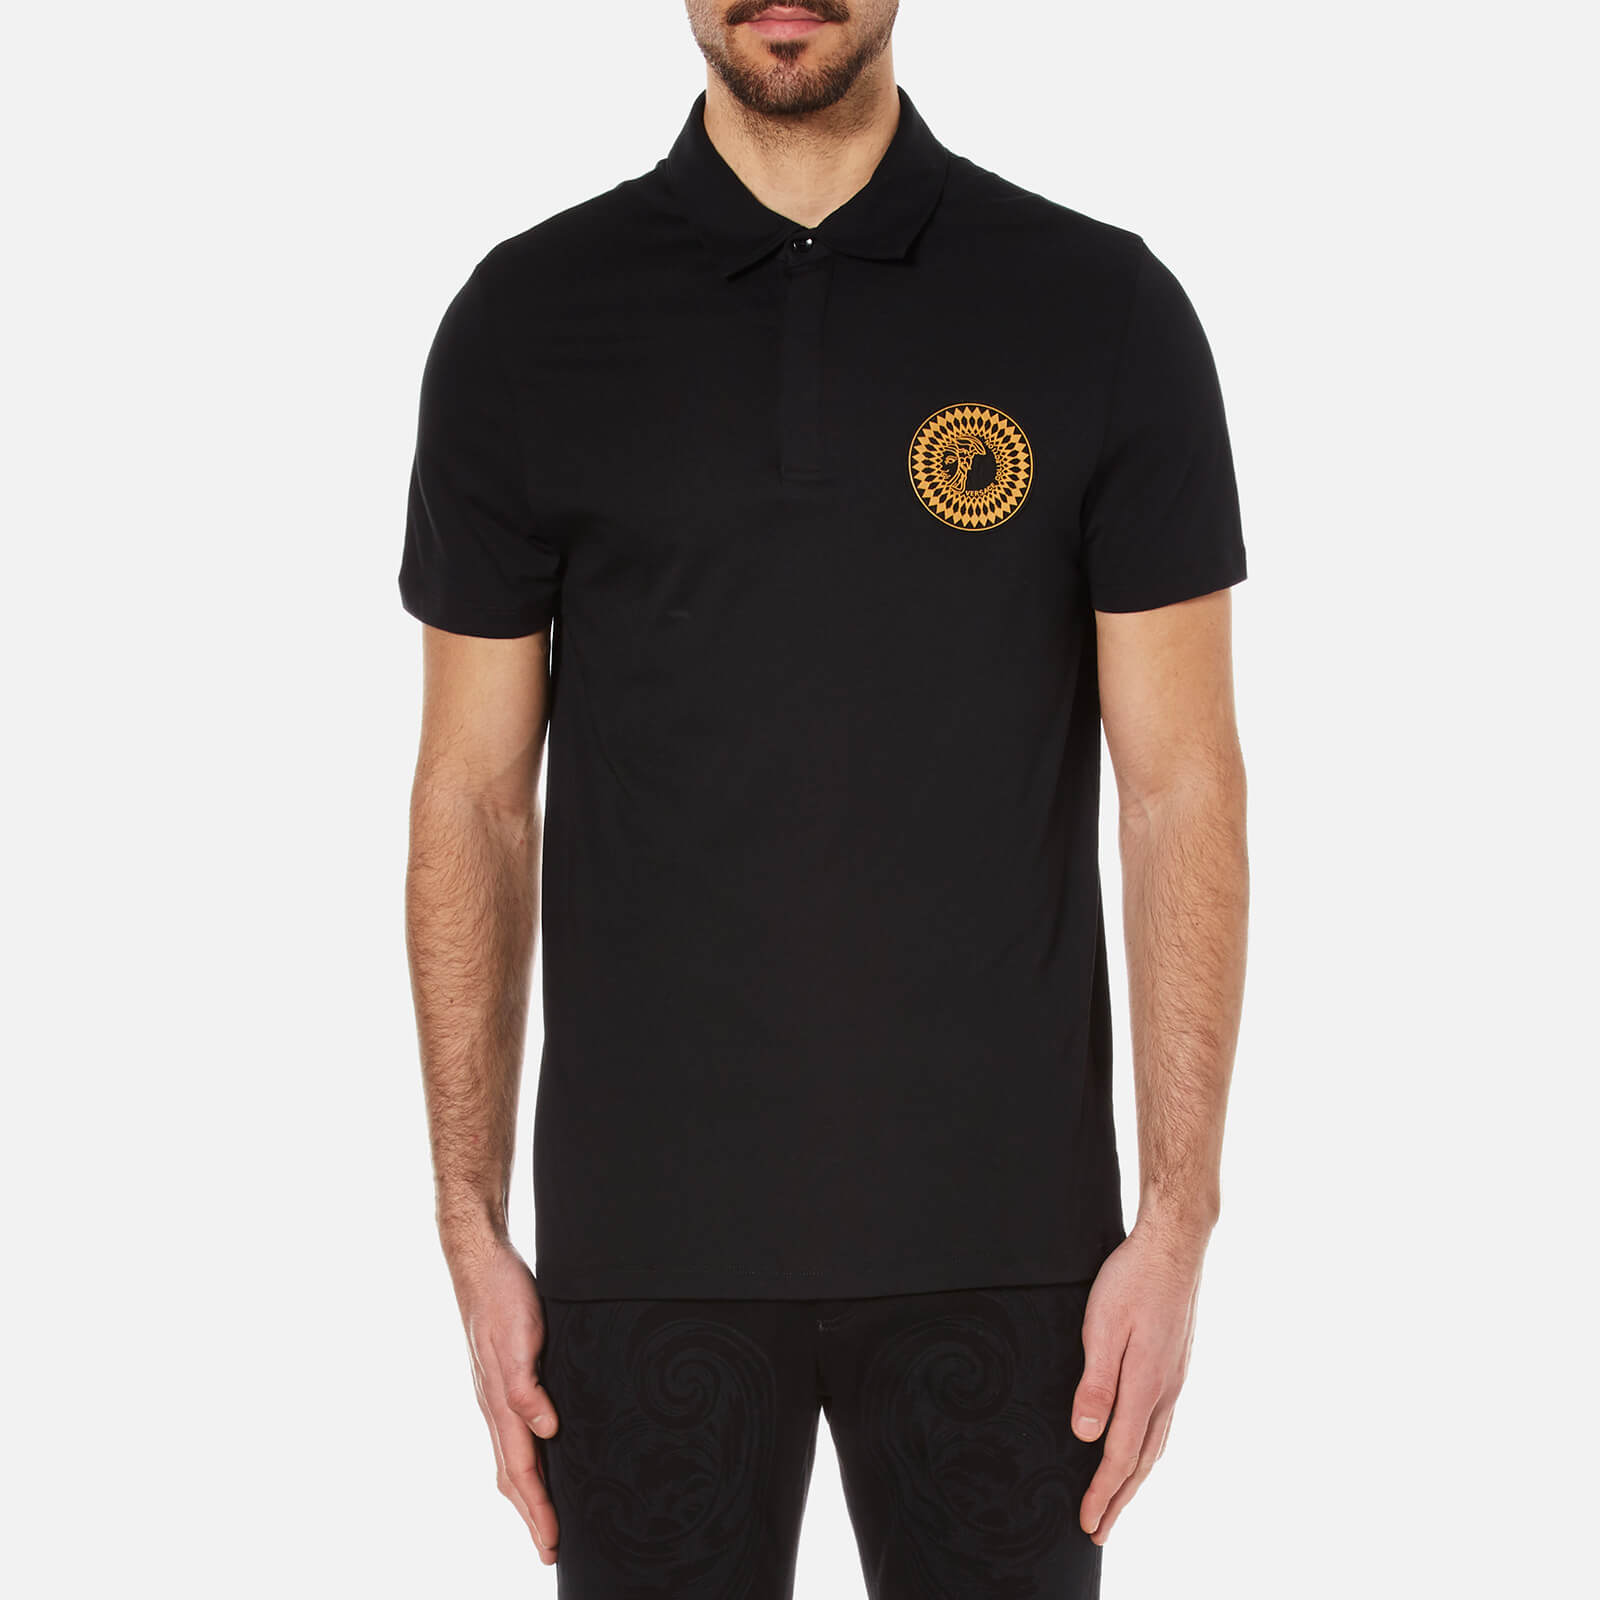 47c66bee Versace Collection Men's Medusa Badge Polo Shirt - Black - Free UK Delivery  over £50